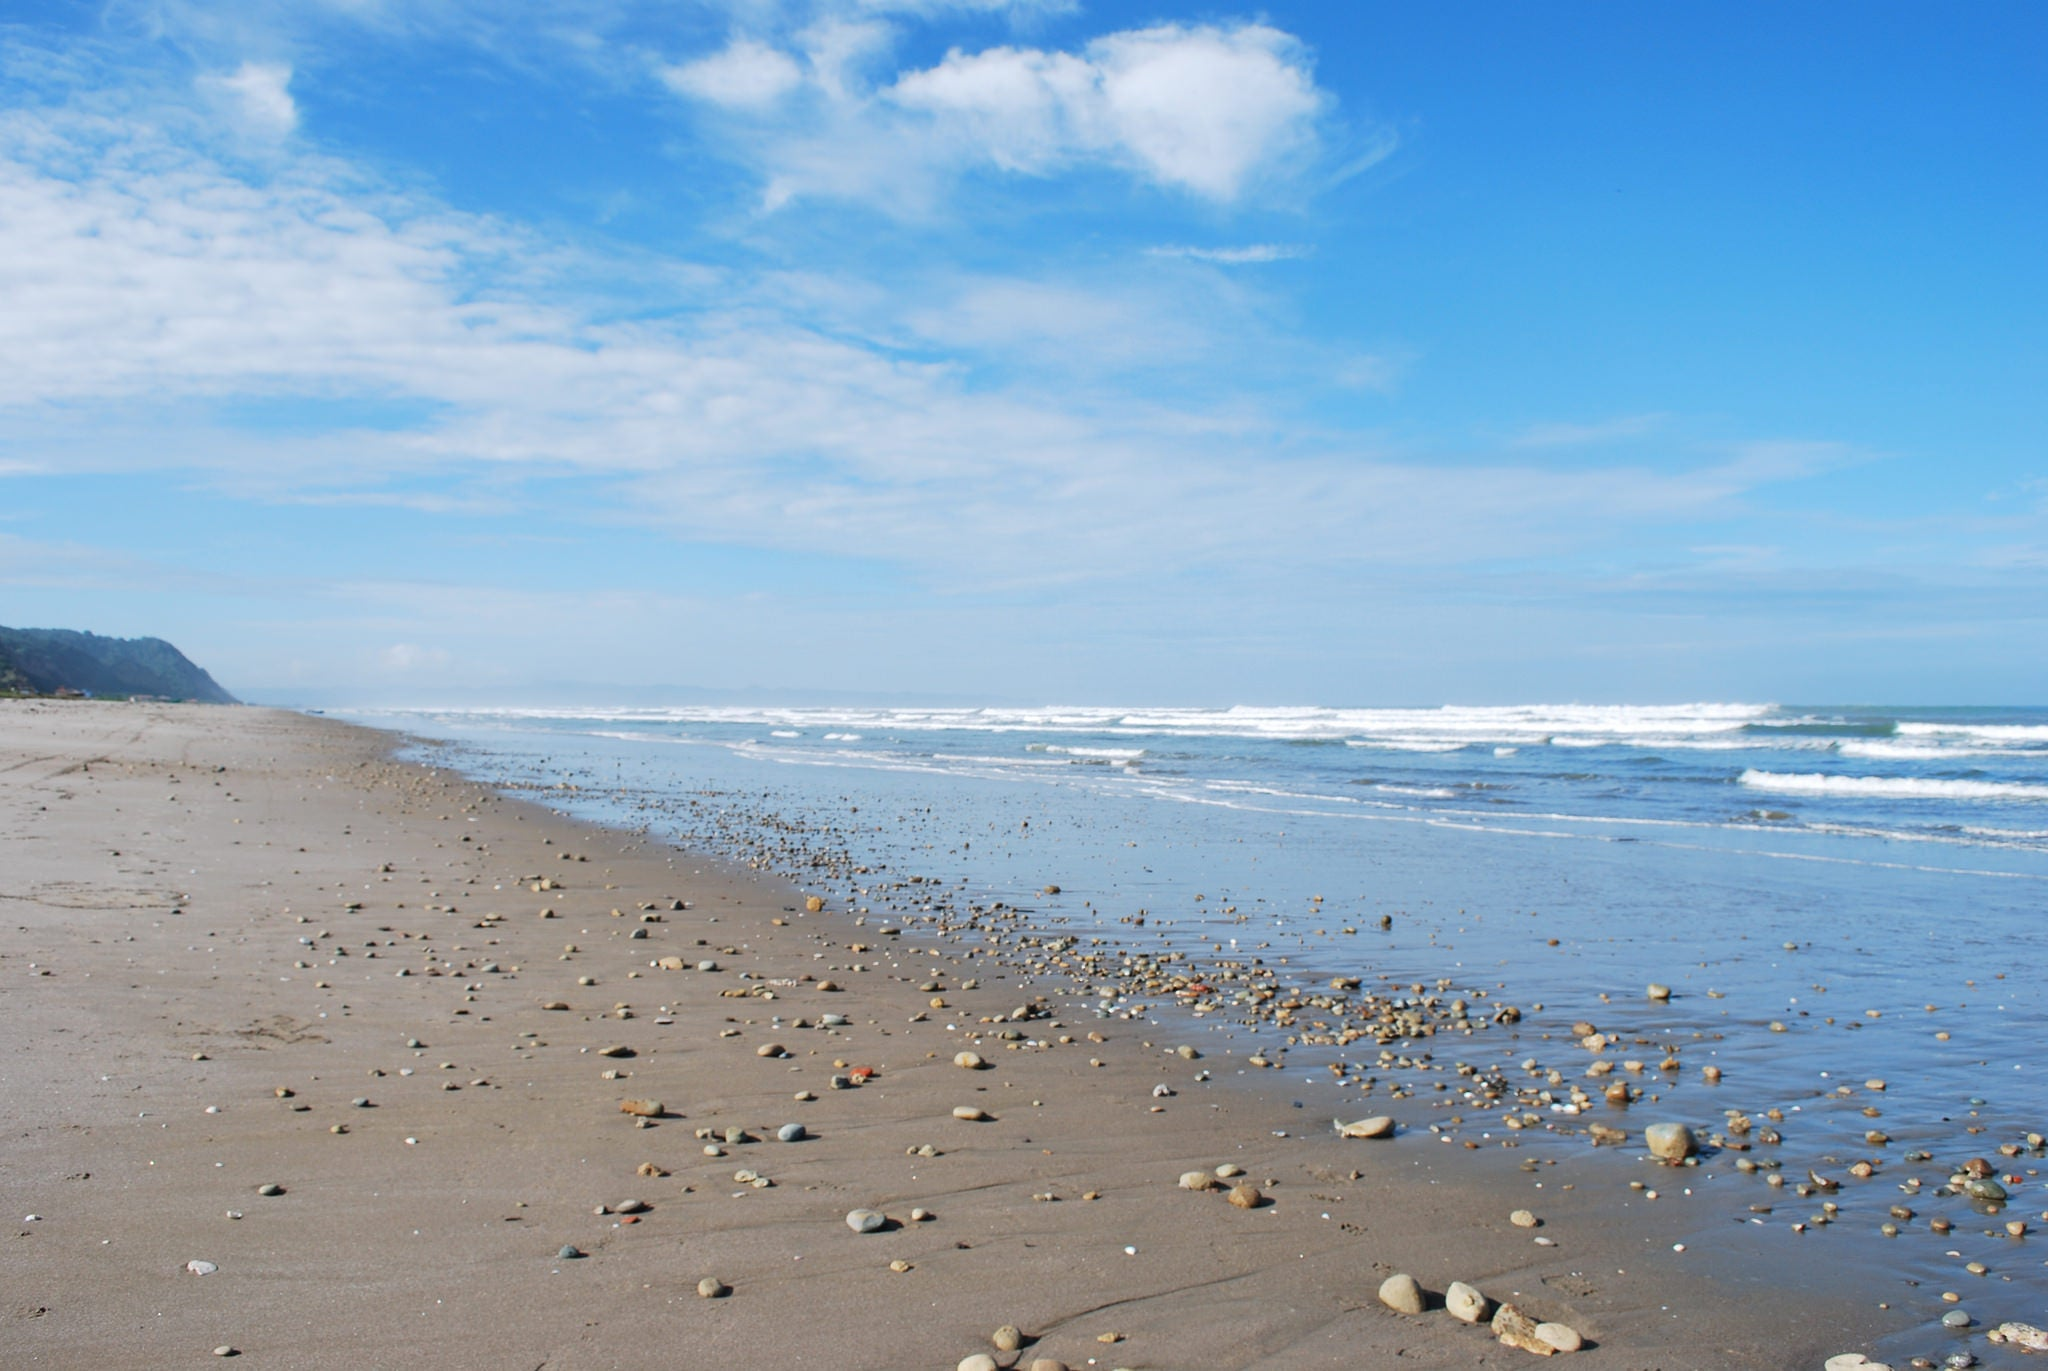 Seas Will Rise for 300 Years - Scientific American